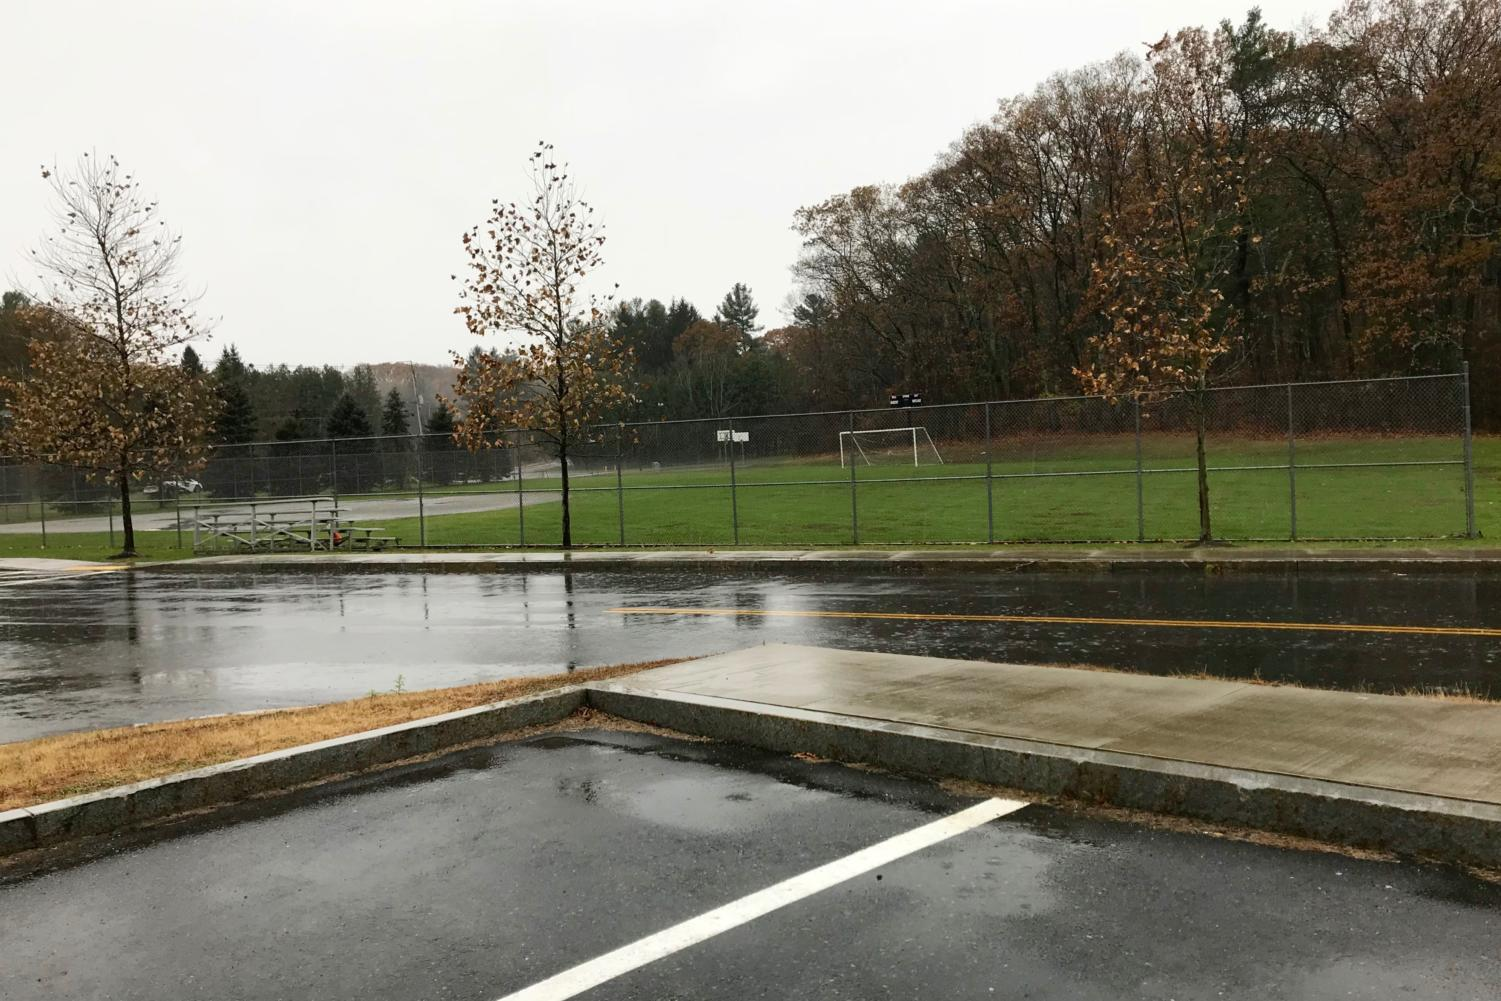 Pictured above is the softball field. According to Principal Allyson Mizoguchi in an email to students and parents, construction crews recently hit the main gas line while performing construction work. Police and National Grid determined there to be no leak into the main building.